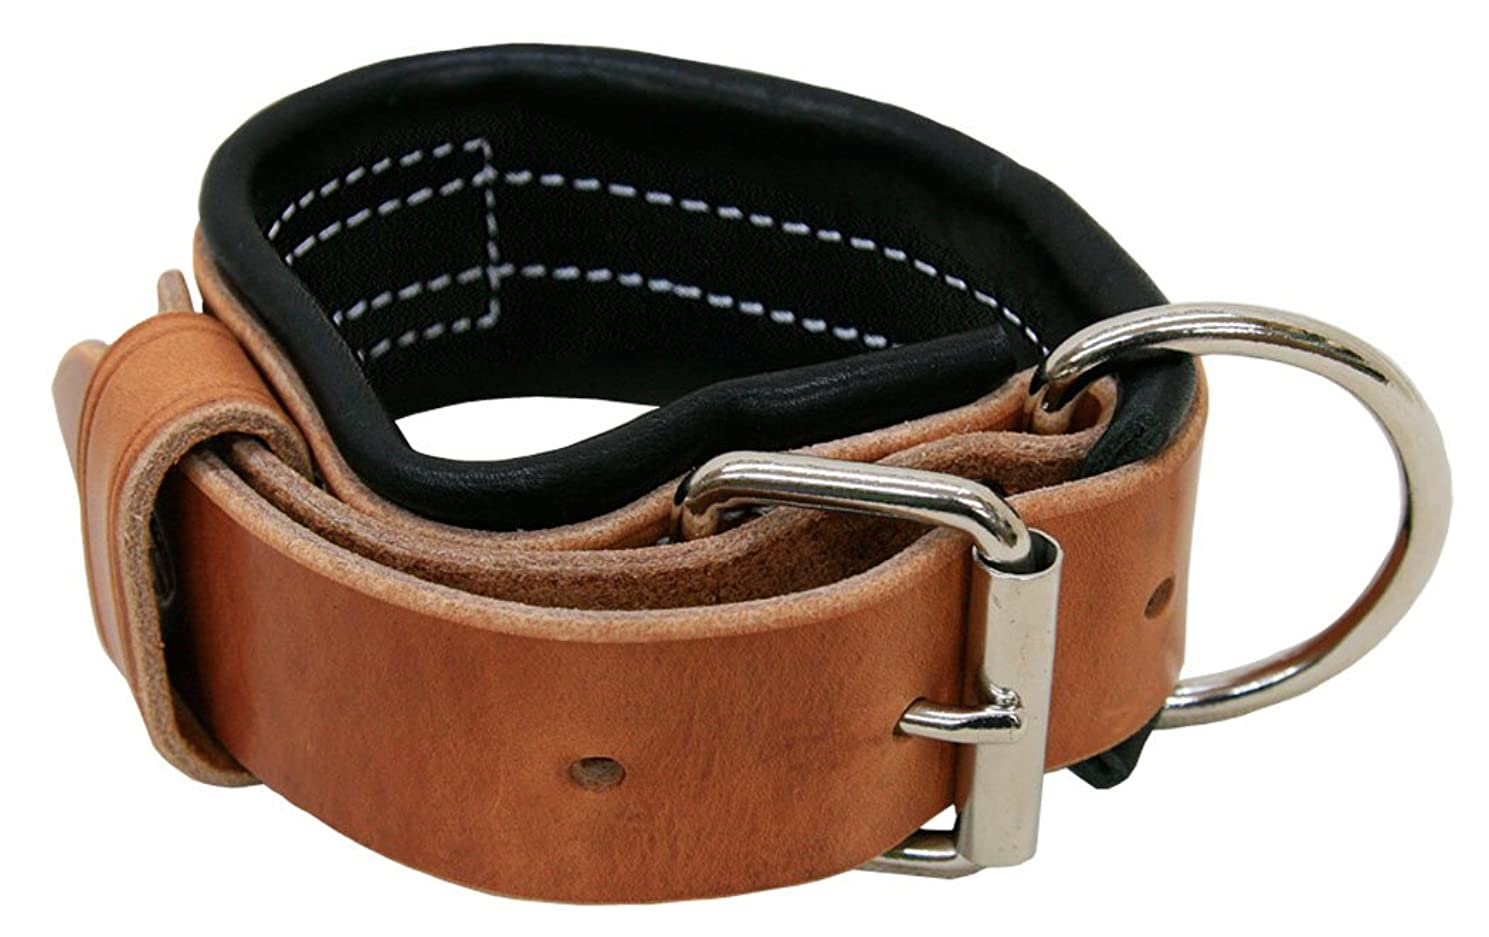 Outfitters Supply Harness Leather Single Leg Hobble For Horse/Mule, Handmade In Montana, Ideal For Horse And Mule Packing, Intended For Picketing/Ground Tying Your Stock For Grazing In The Backcountry